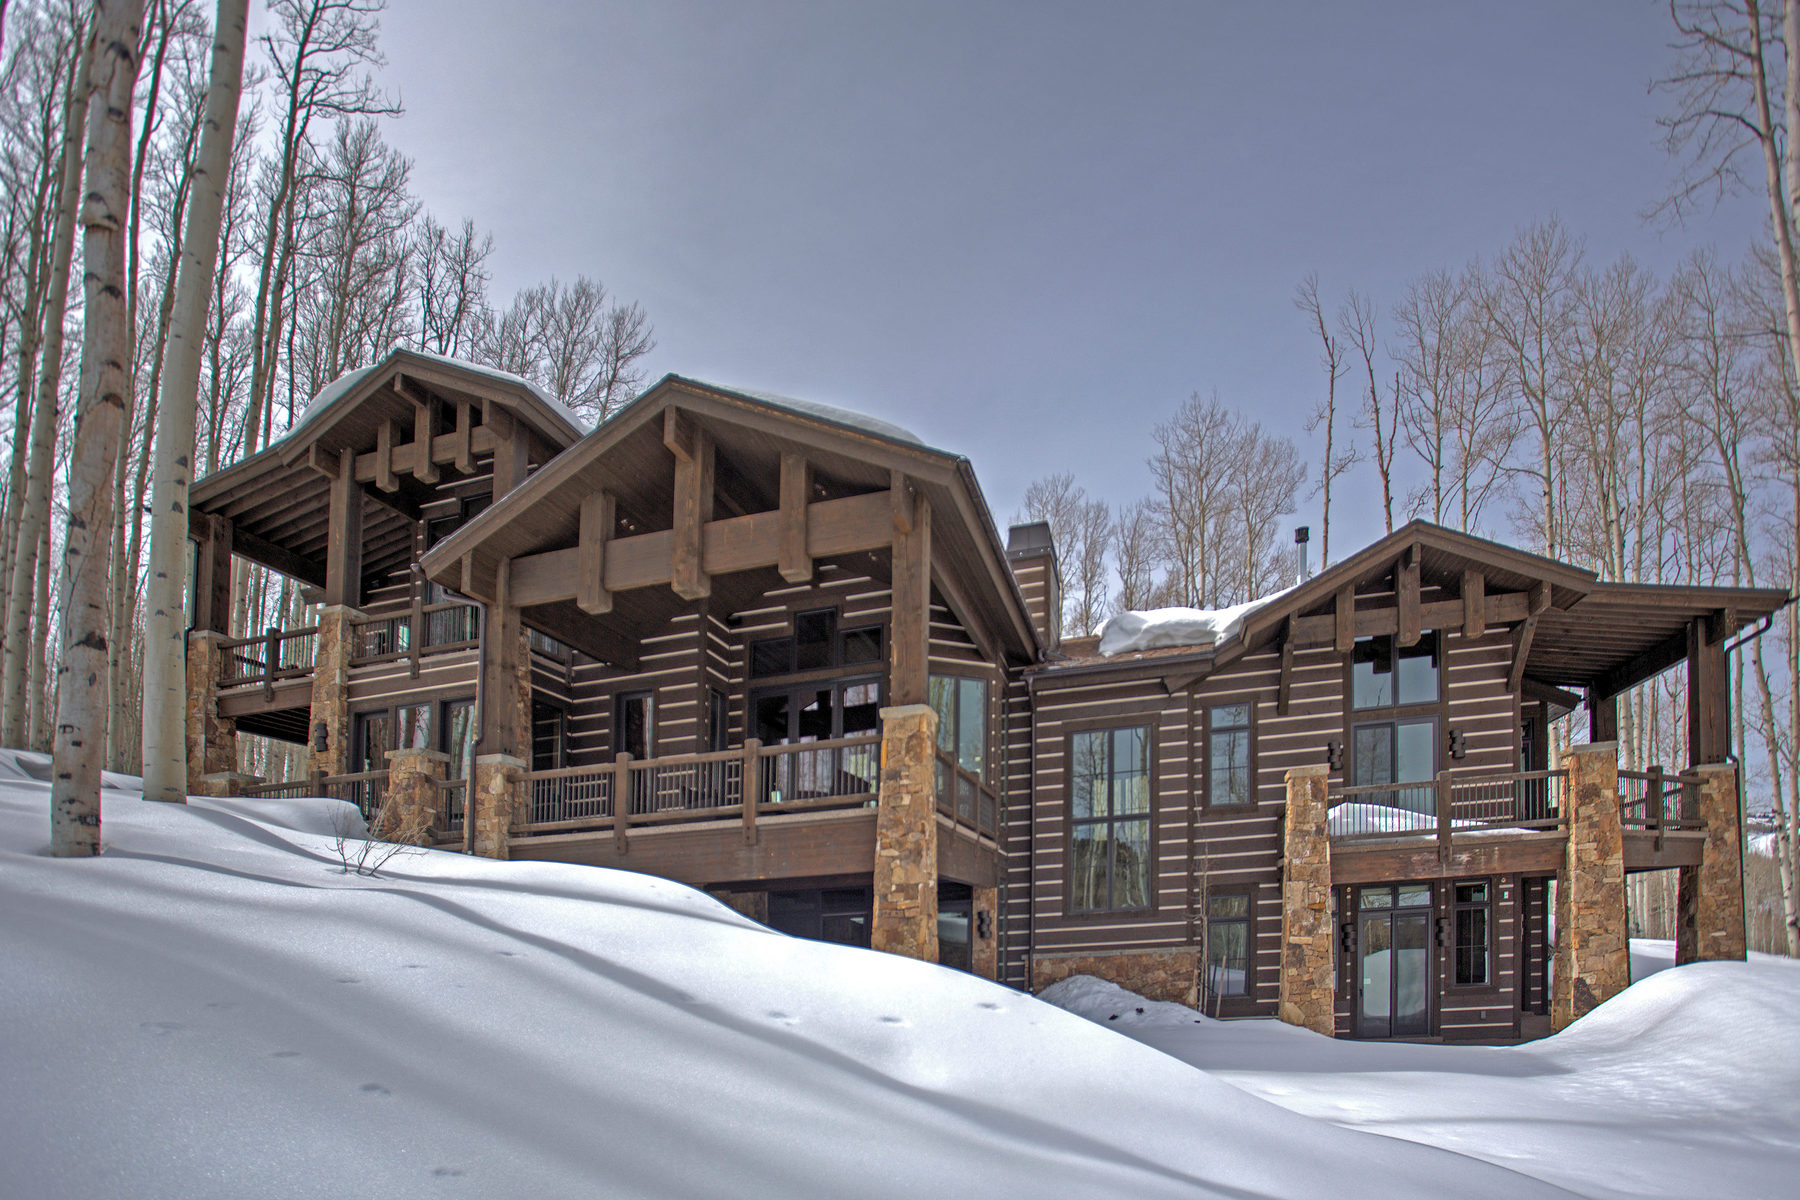 Nhà ở một gia đình vì Bán tại Incredible Ski-In Ski-Out Colony Home with Mature Trees and Views 177 White Pine Canyon Rd Lot 177 Park City, Utah 84098 Hoa Kỳ